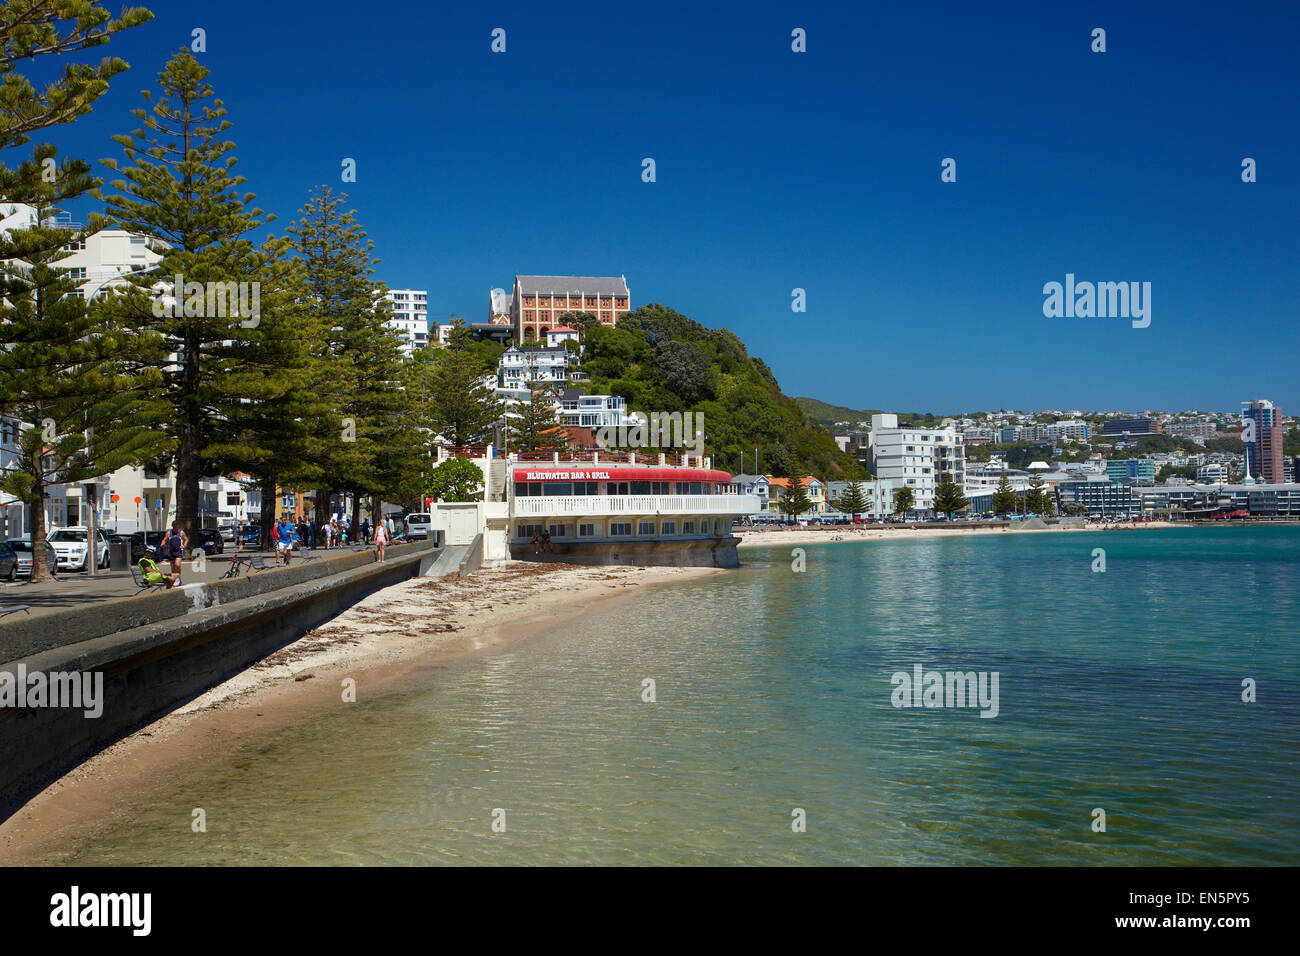 Bluewater stock photos bluewater stock images alamy - Blue water bar and grill ...